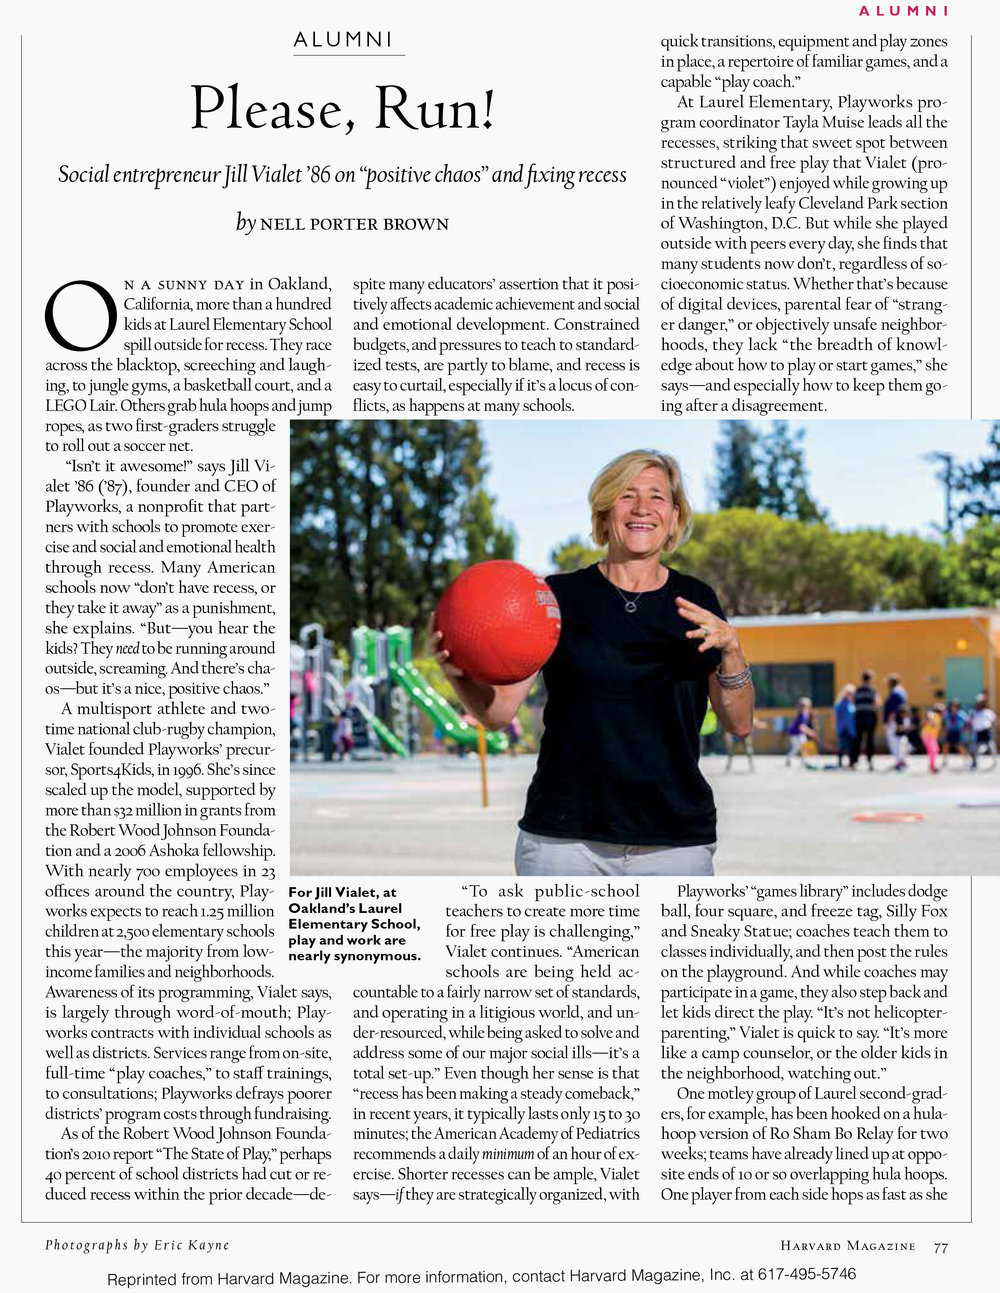 Jill Vialet, founder and CEO of  Playworks,  a nonprofit that partners with schools to promote exercise and social and emotional health through recess.